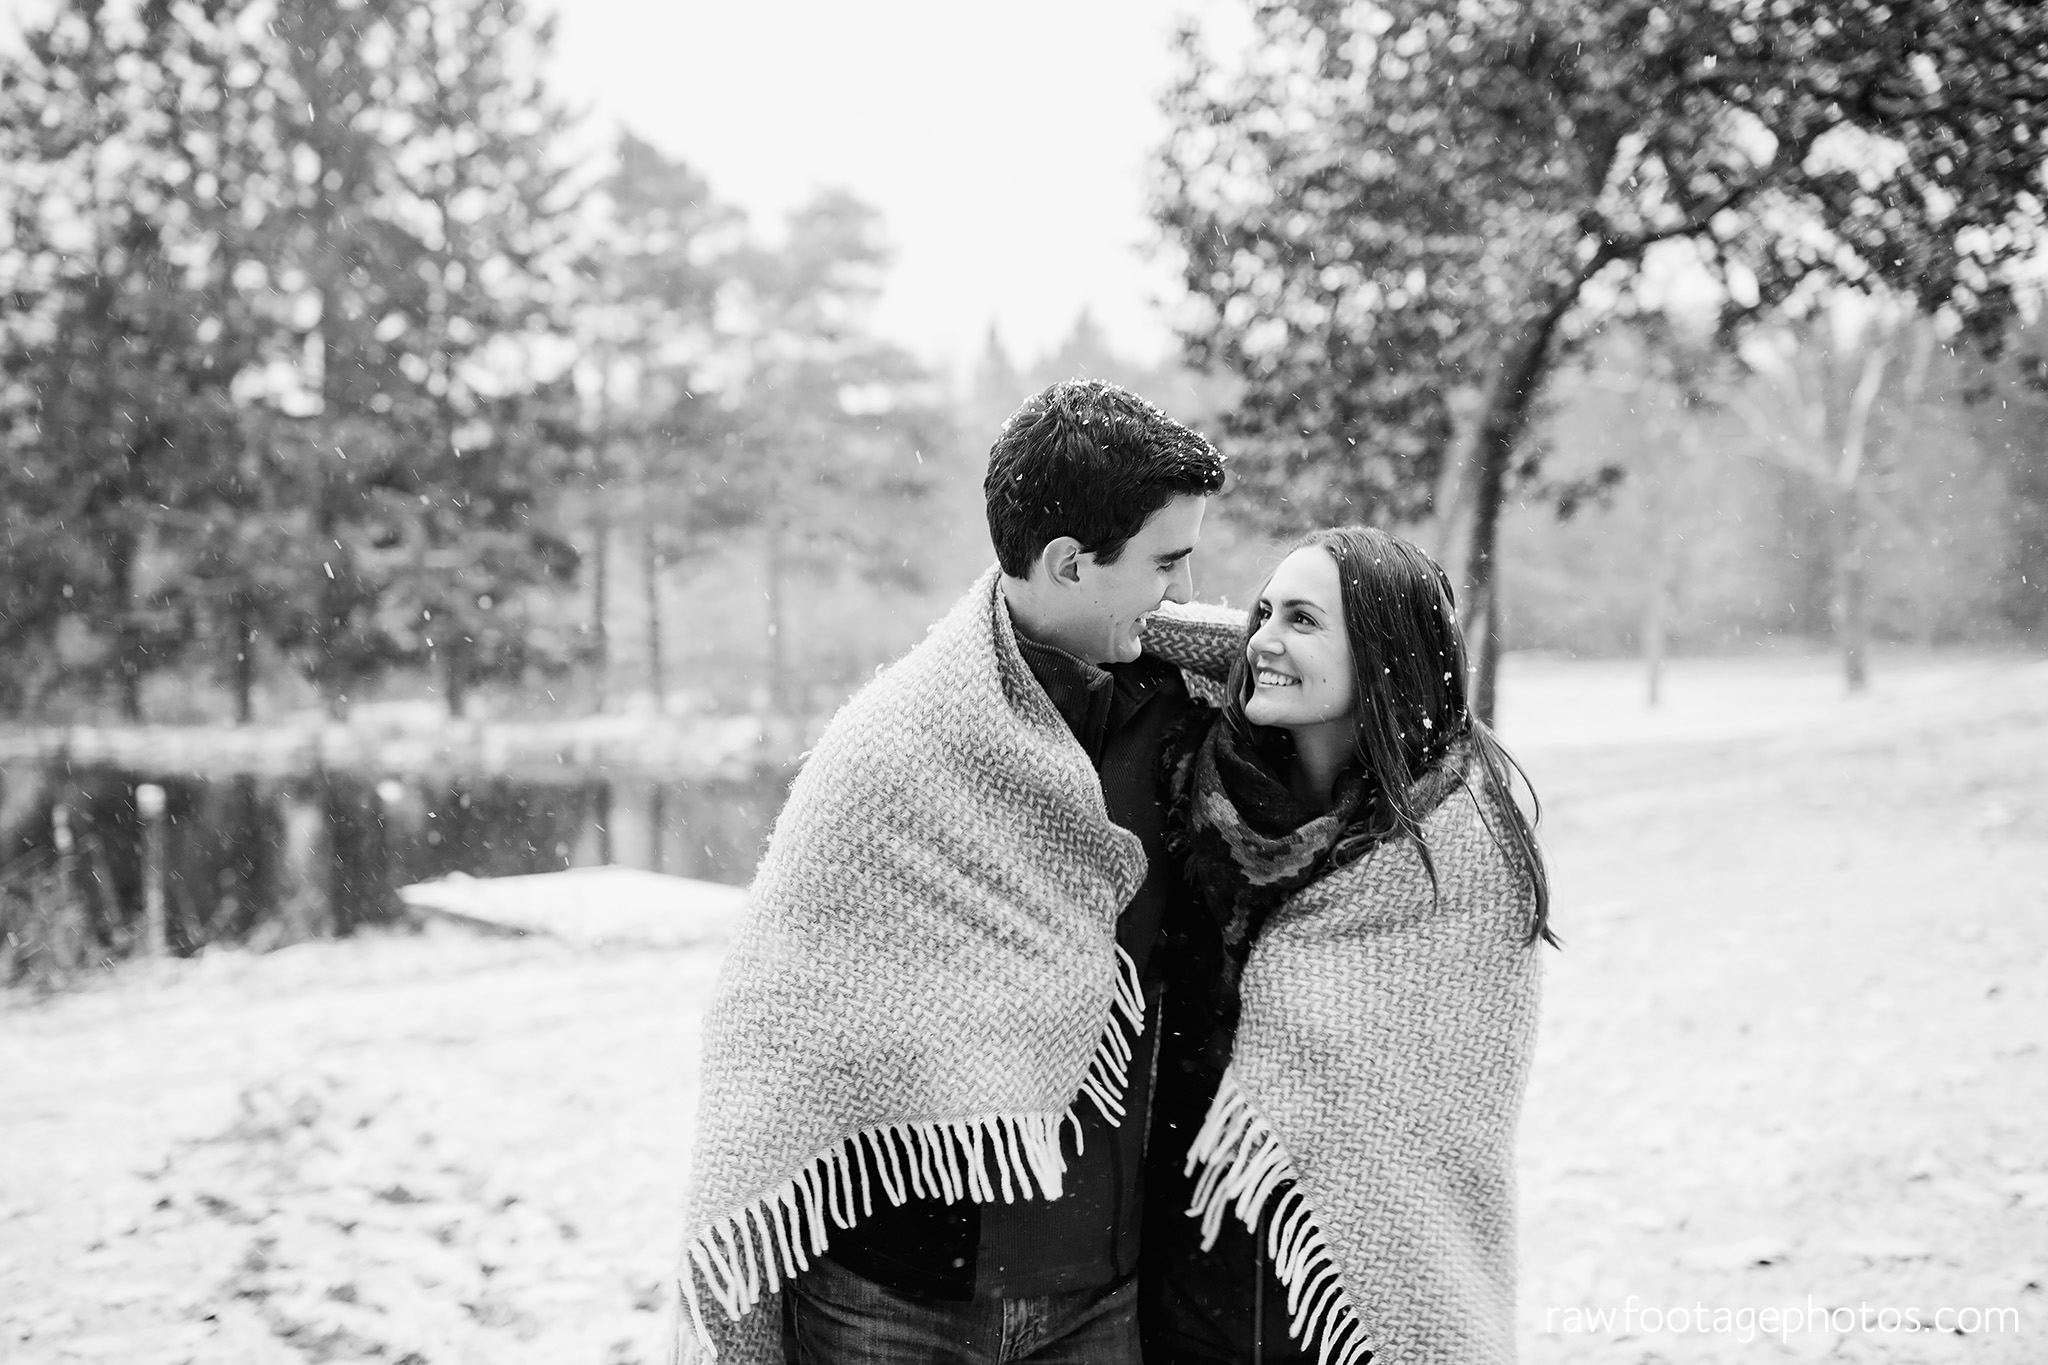 london_ontario_wedding_photographer-snowy_engagement_session-winter-barn-farm-snowflakes-blizzard-raw_footage_photography015.jpg